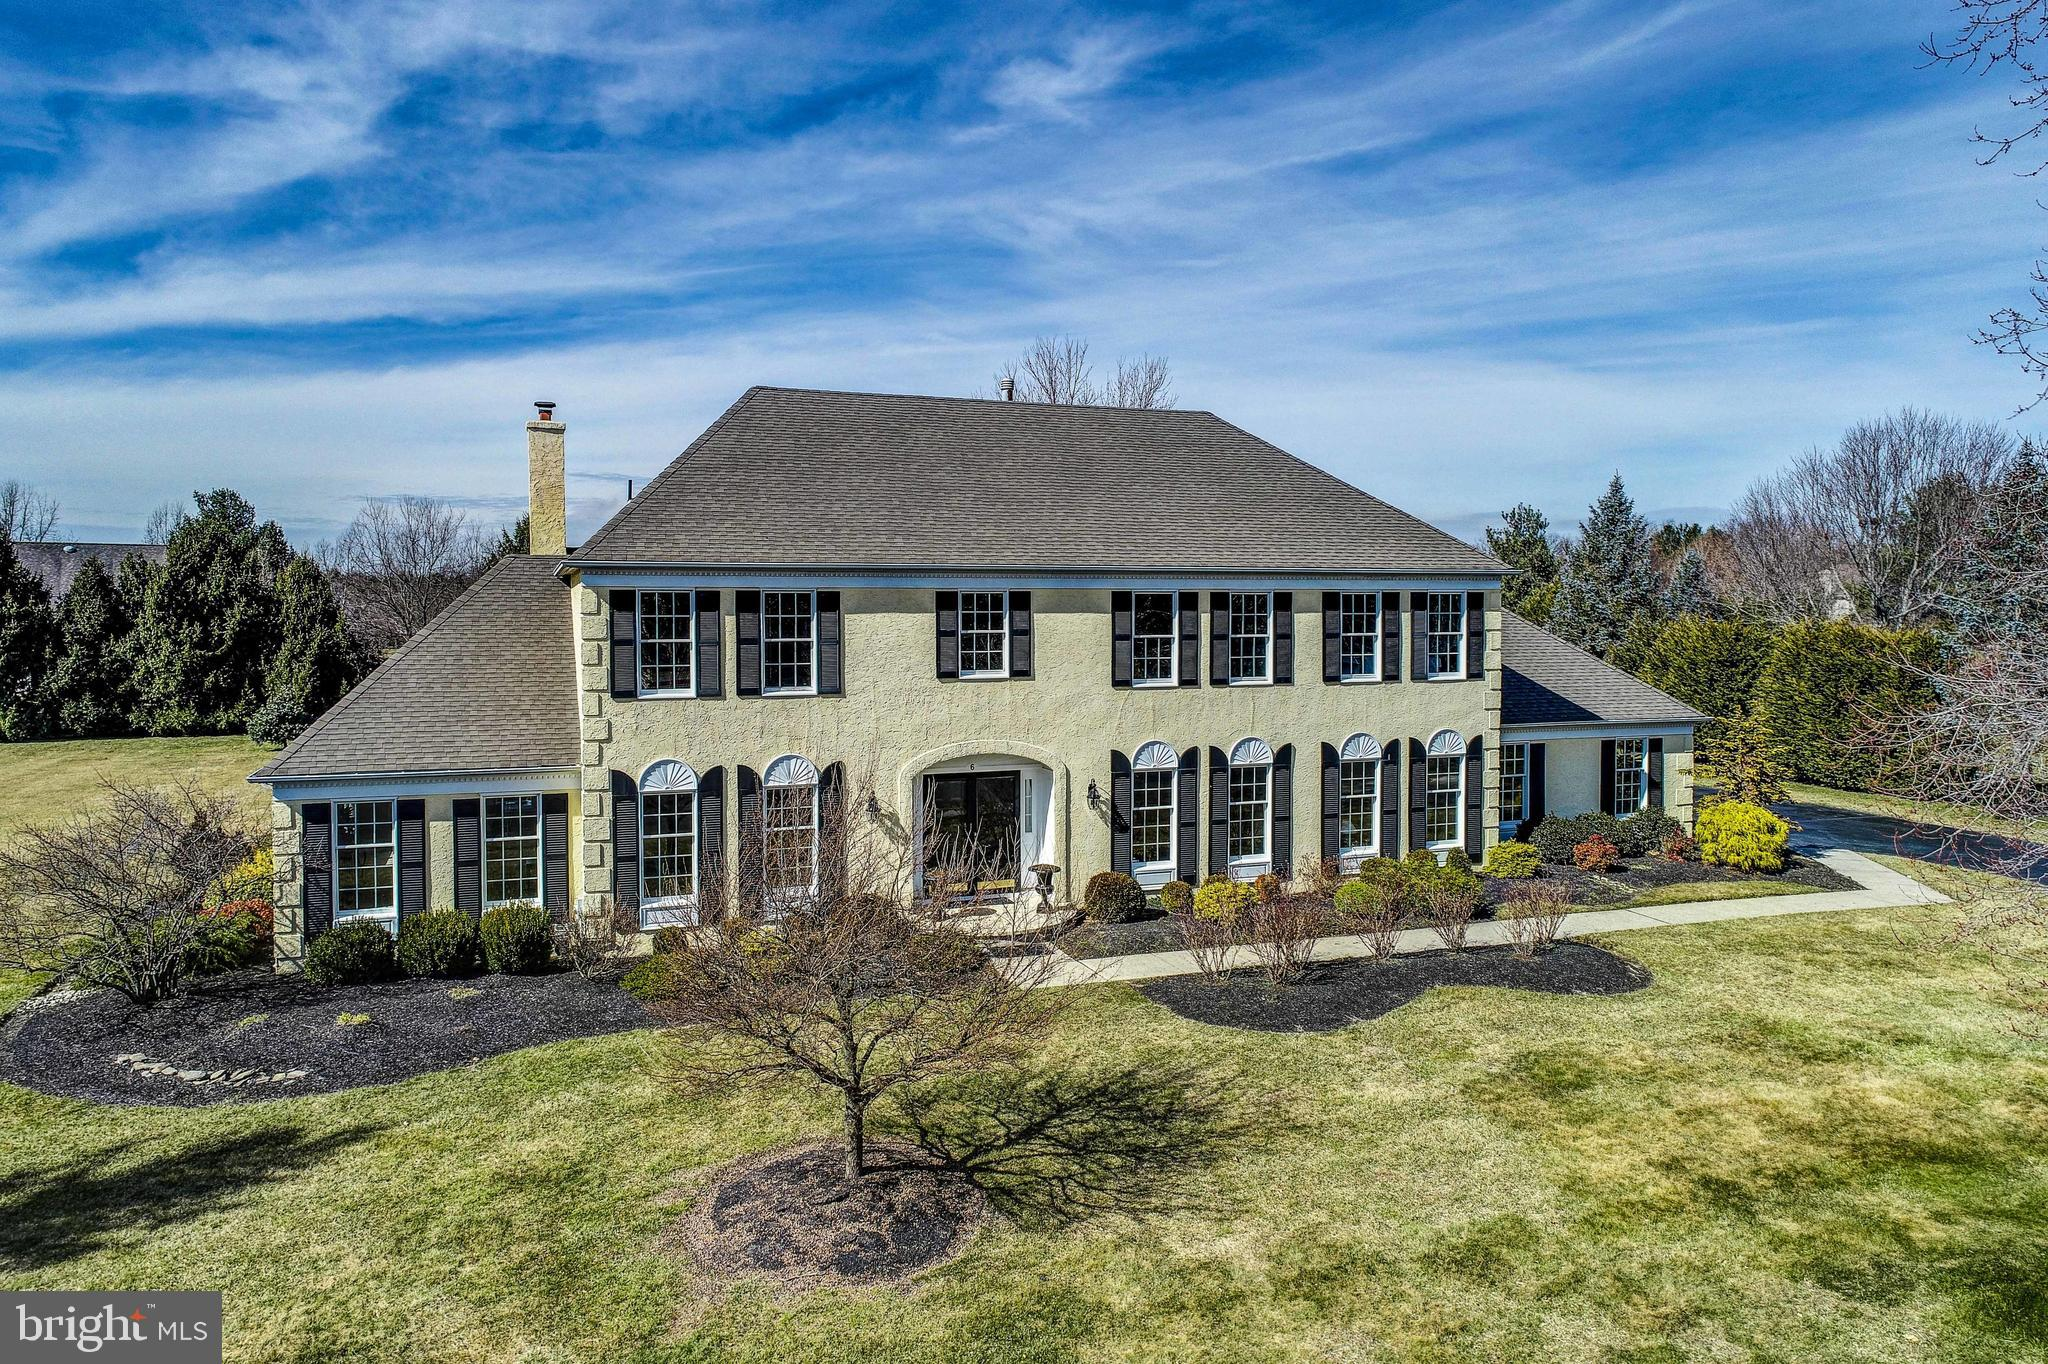 6 MILLBROOK DRIVE, PRINCETON JUNCTION, NJ 08550